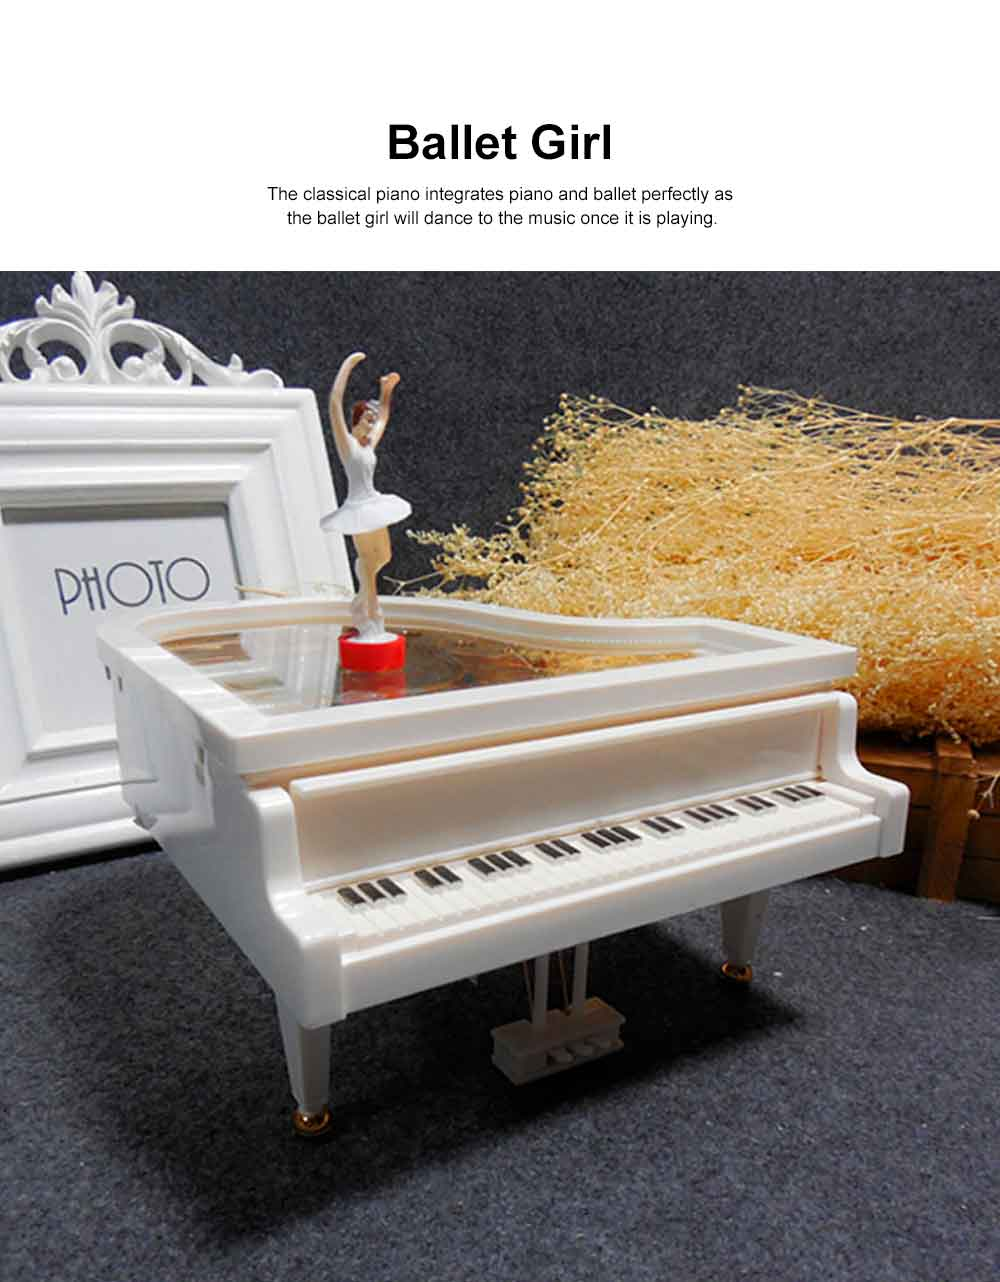 Creative Ballet Rotating Piano Music Box Christmas Gift or Valentine's Day Presemt Piano with Dancing Ballet Girl 2